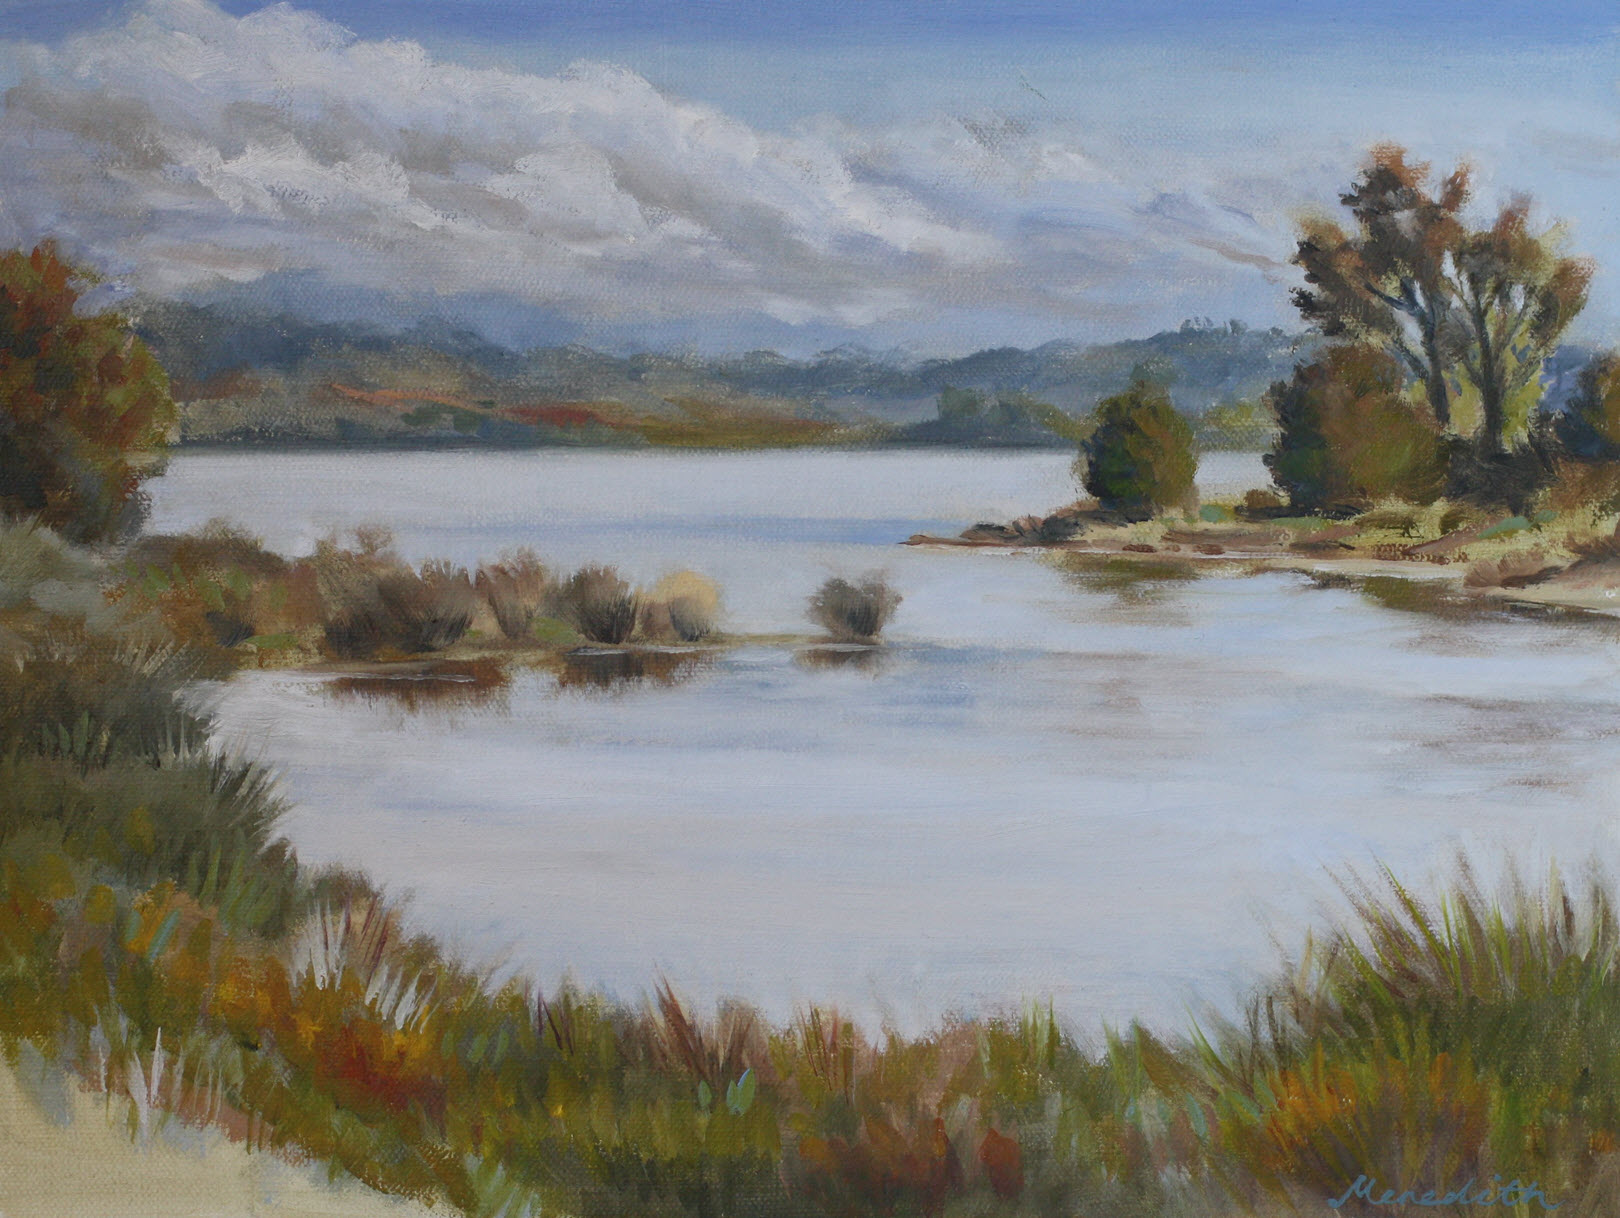 Estuary from Rough Island  (2018). 305 mm x 405 mm. Oil on Canvas.